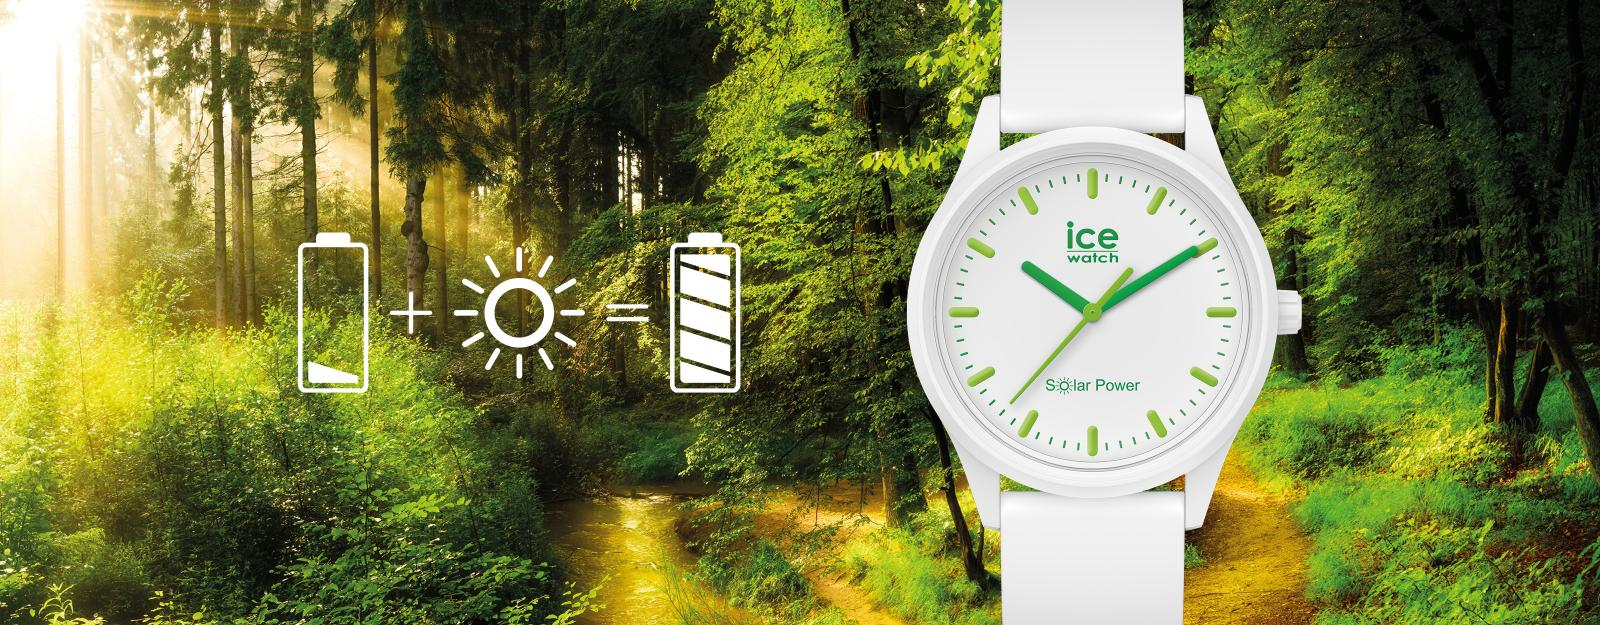 <p>Ice Watch</p>